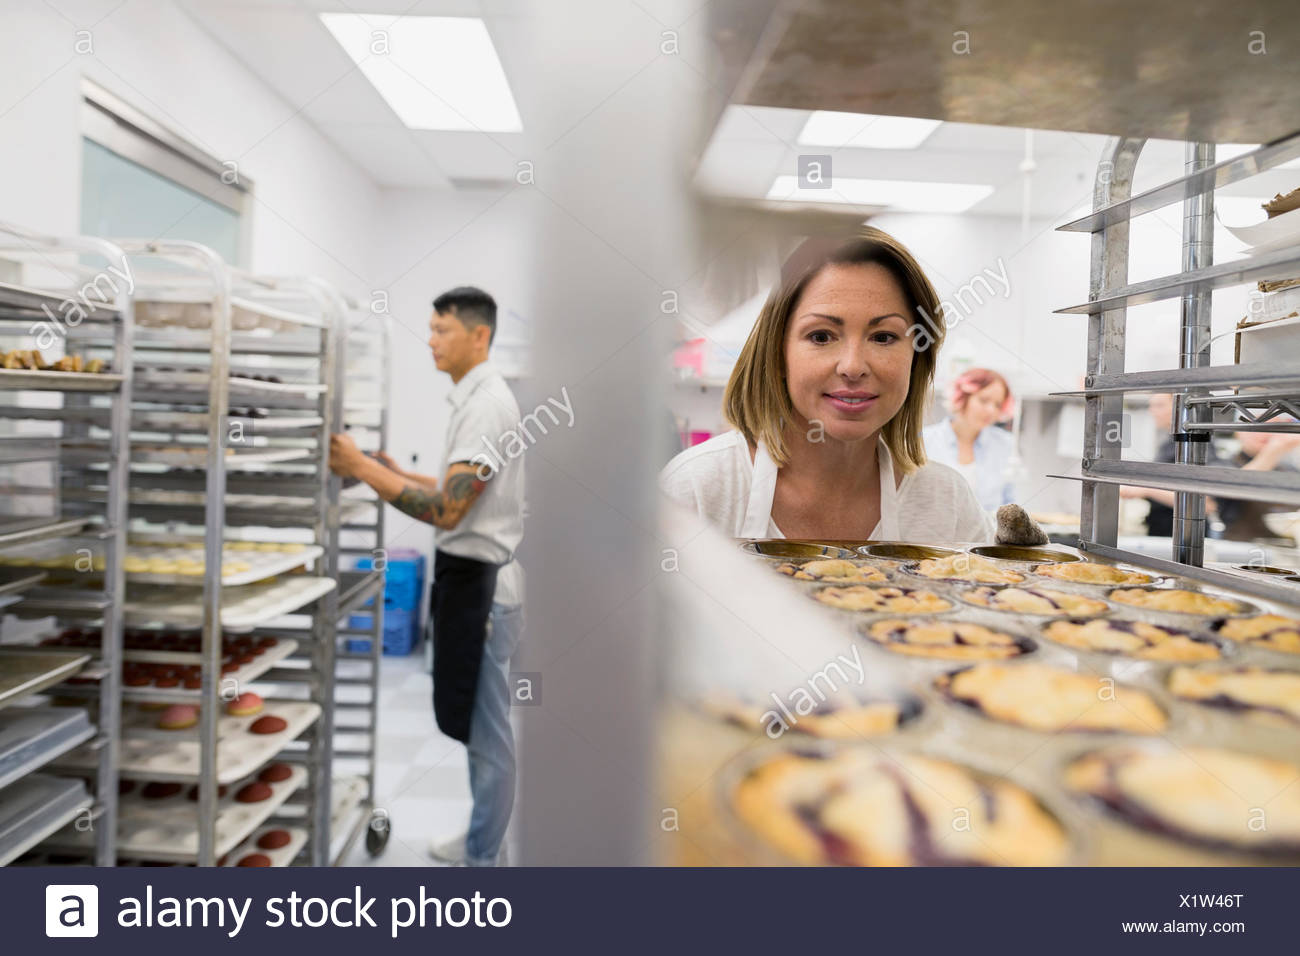 Pastry chef placing muffin tray on rack - Stock Image